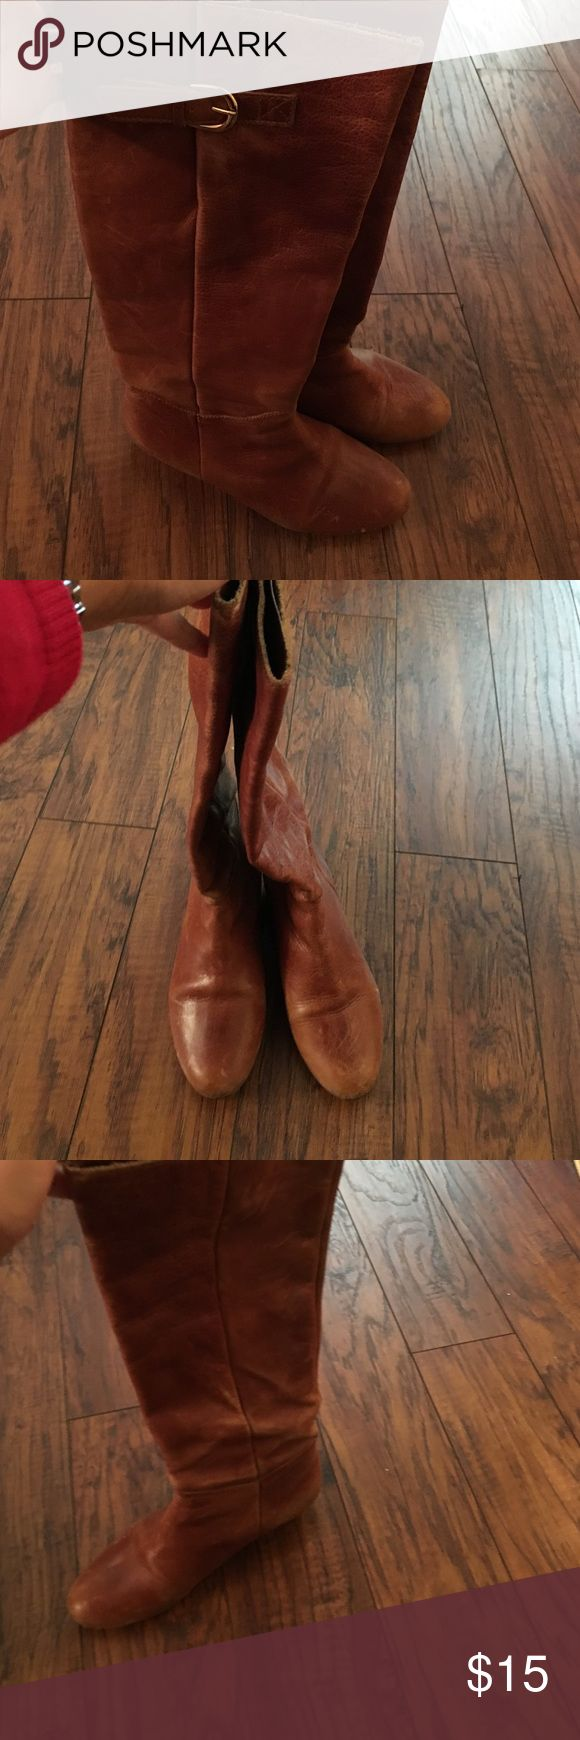 Flat tan leather boots These flat tan leather boots go well w/ any outfit! Steven by Steve Madden Shoes Winter & Rain Boots